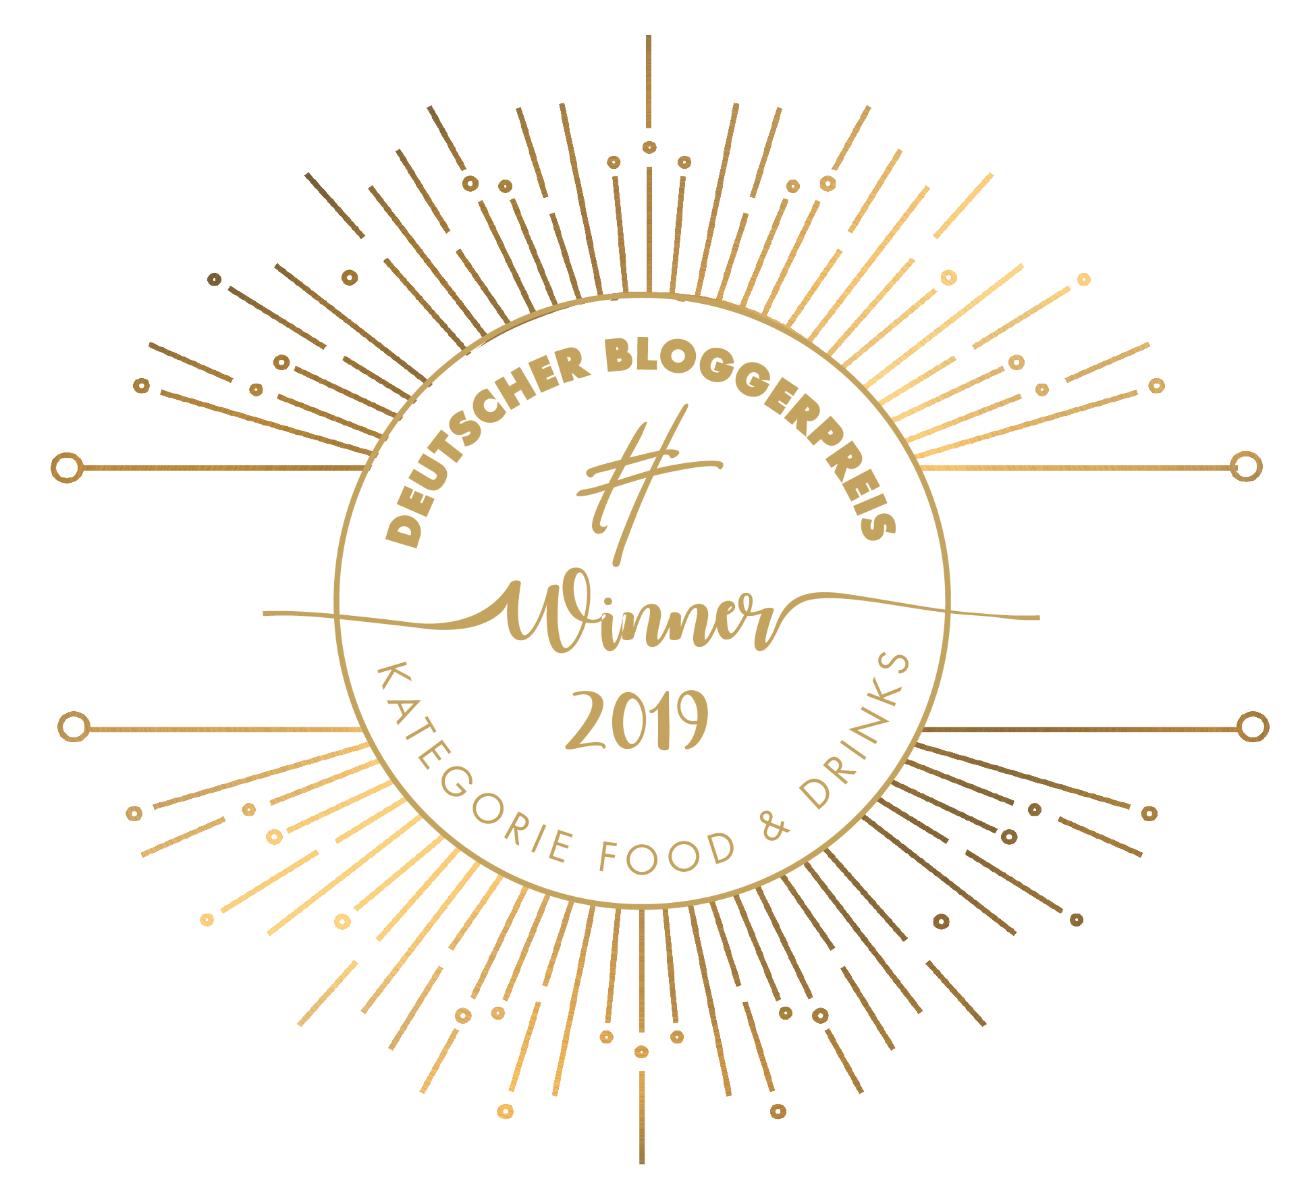 Deutscher Bloggerpreis Winner 2019